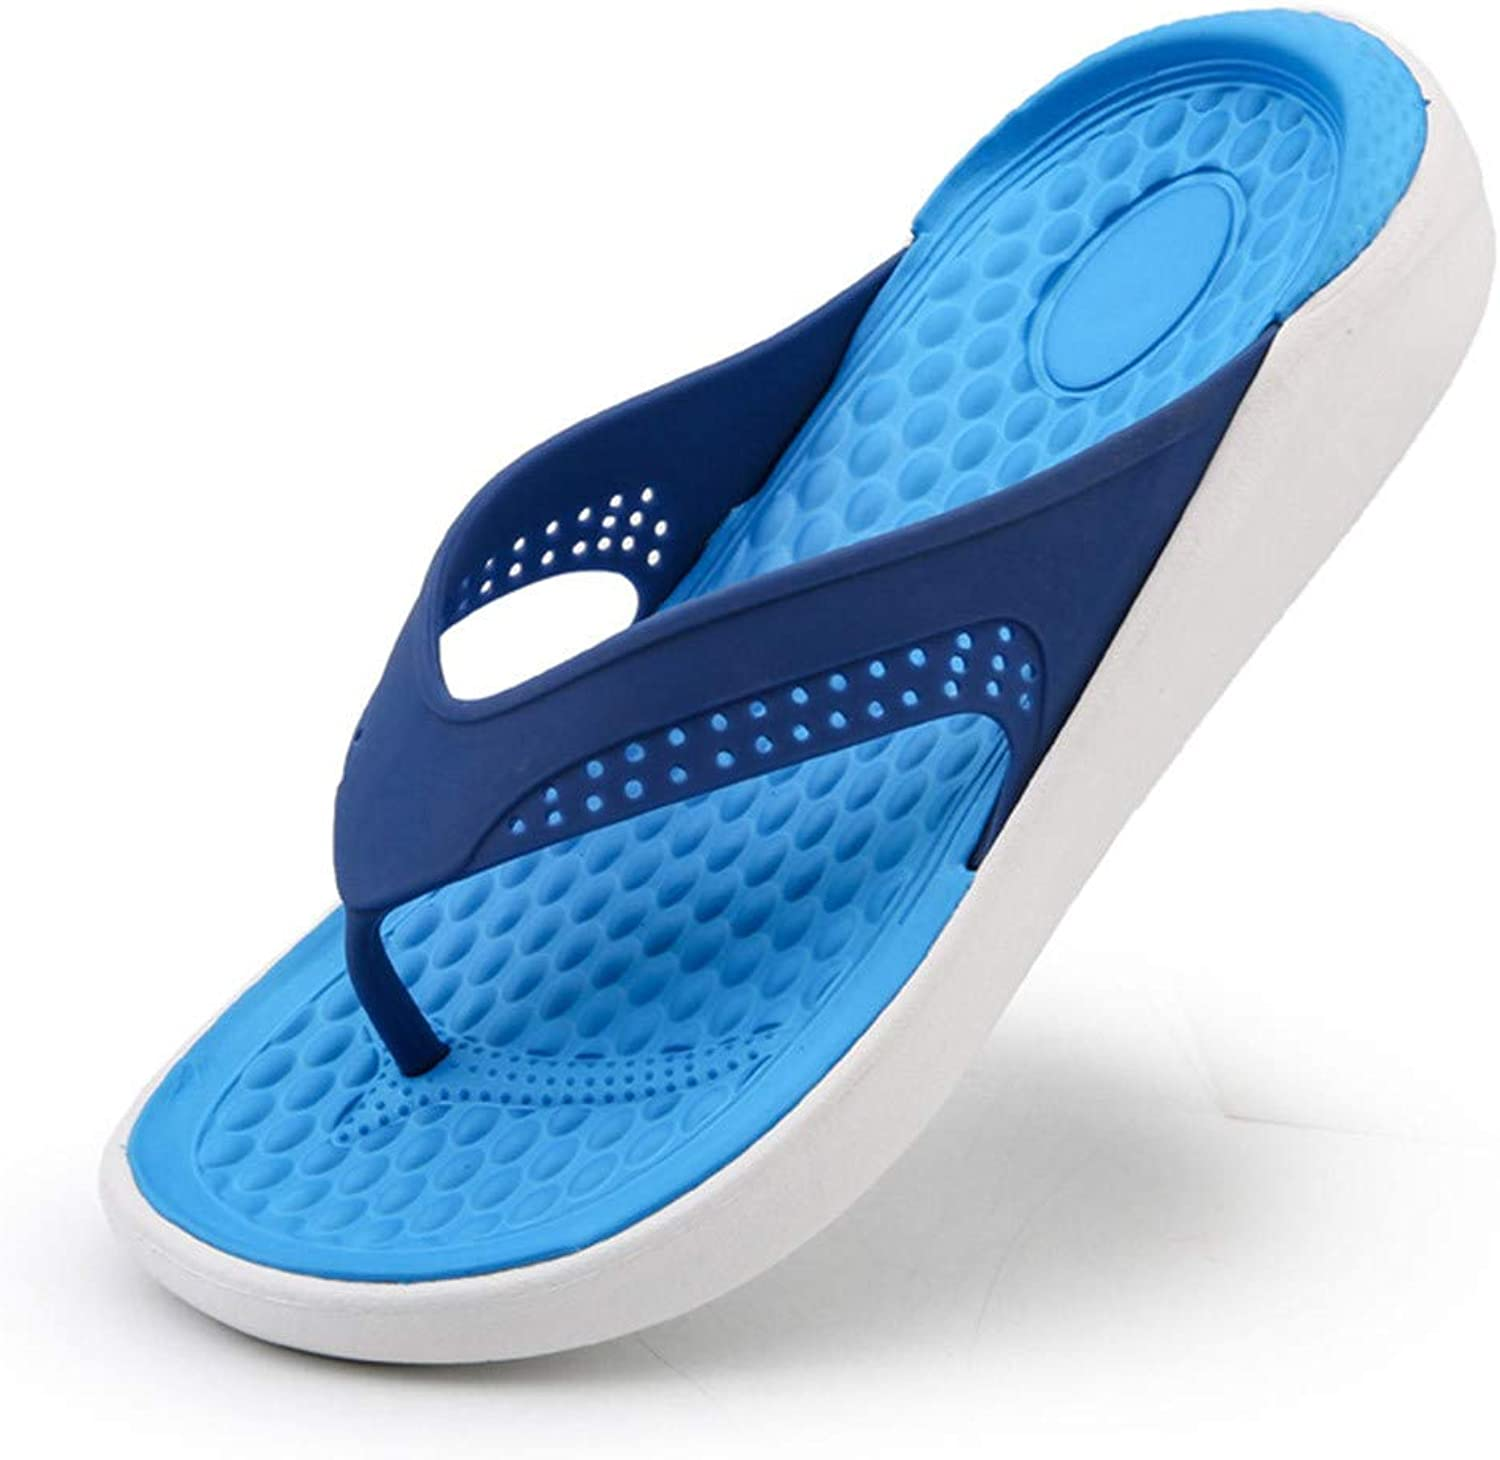 Mens Beach Sandals Hollow Out Casual Breathable Flip Flop Slippers Flats shoes